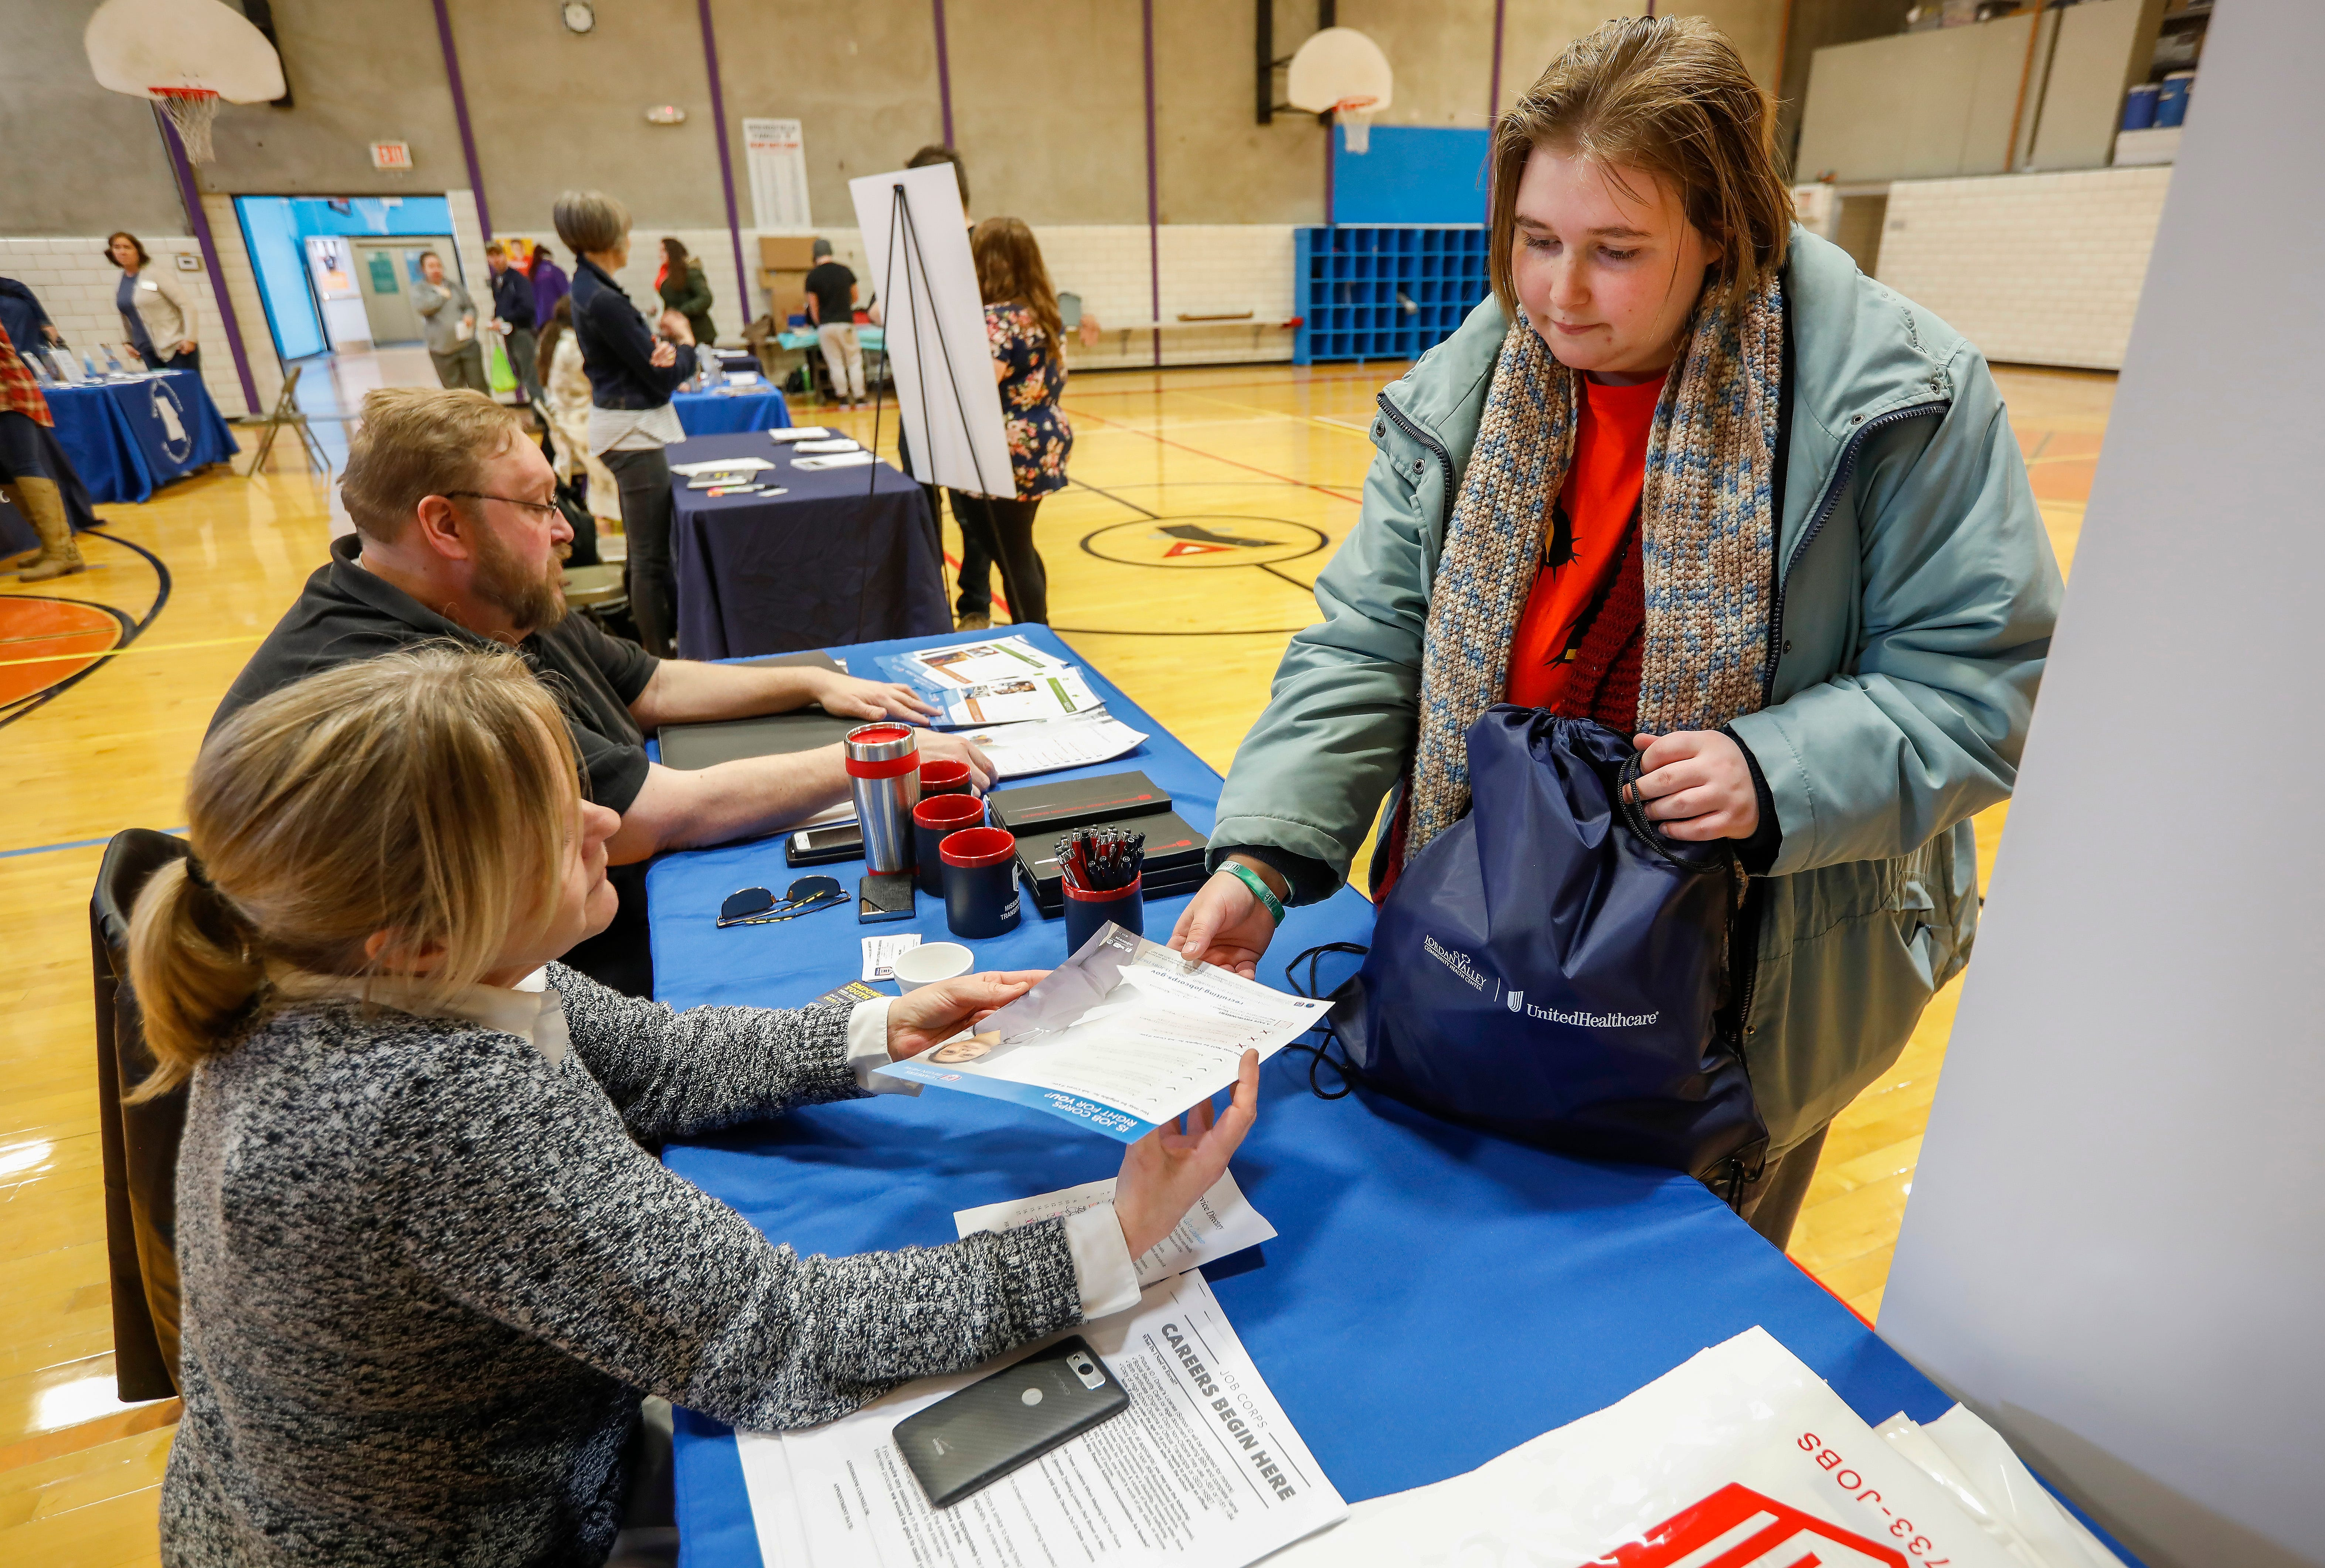 Kelsey Cotten, right, talks with Job Corps Outreach and Admissions Counselor Emily Nelms during the Point in Time homeless county at the YMCA on Thursday, Jan. 31, 2019.